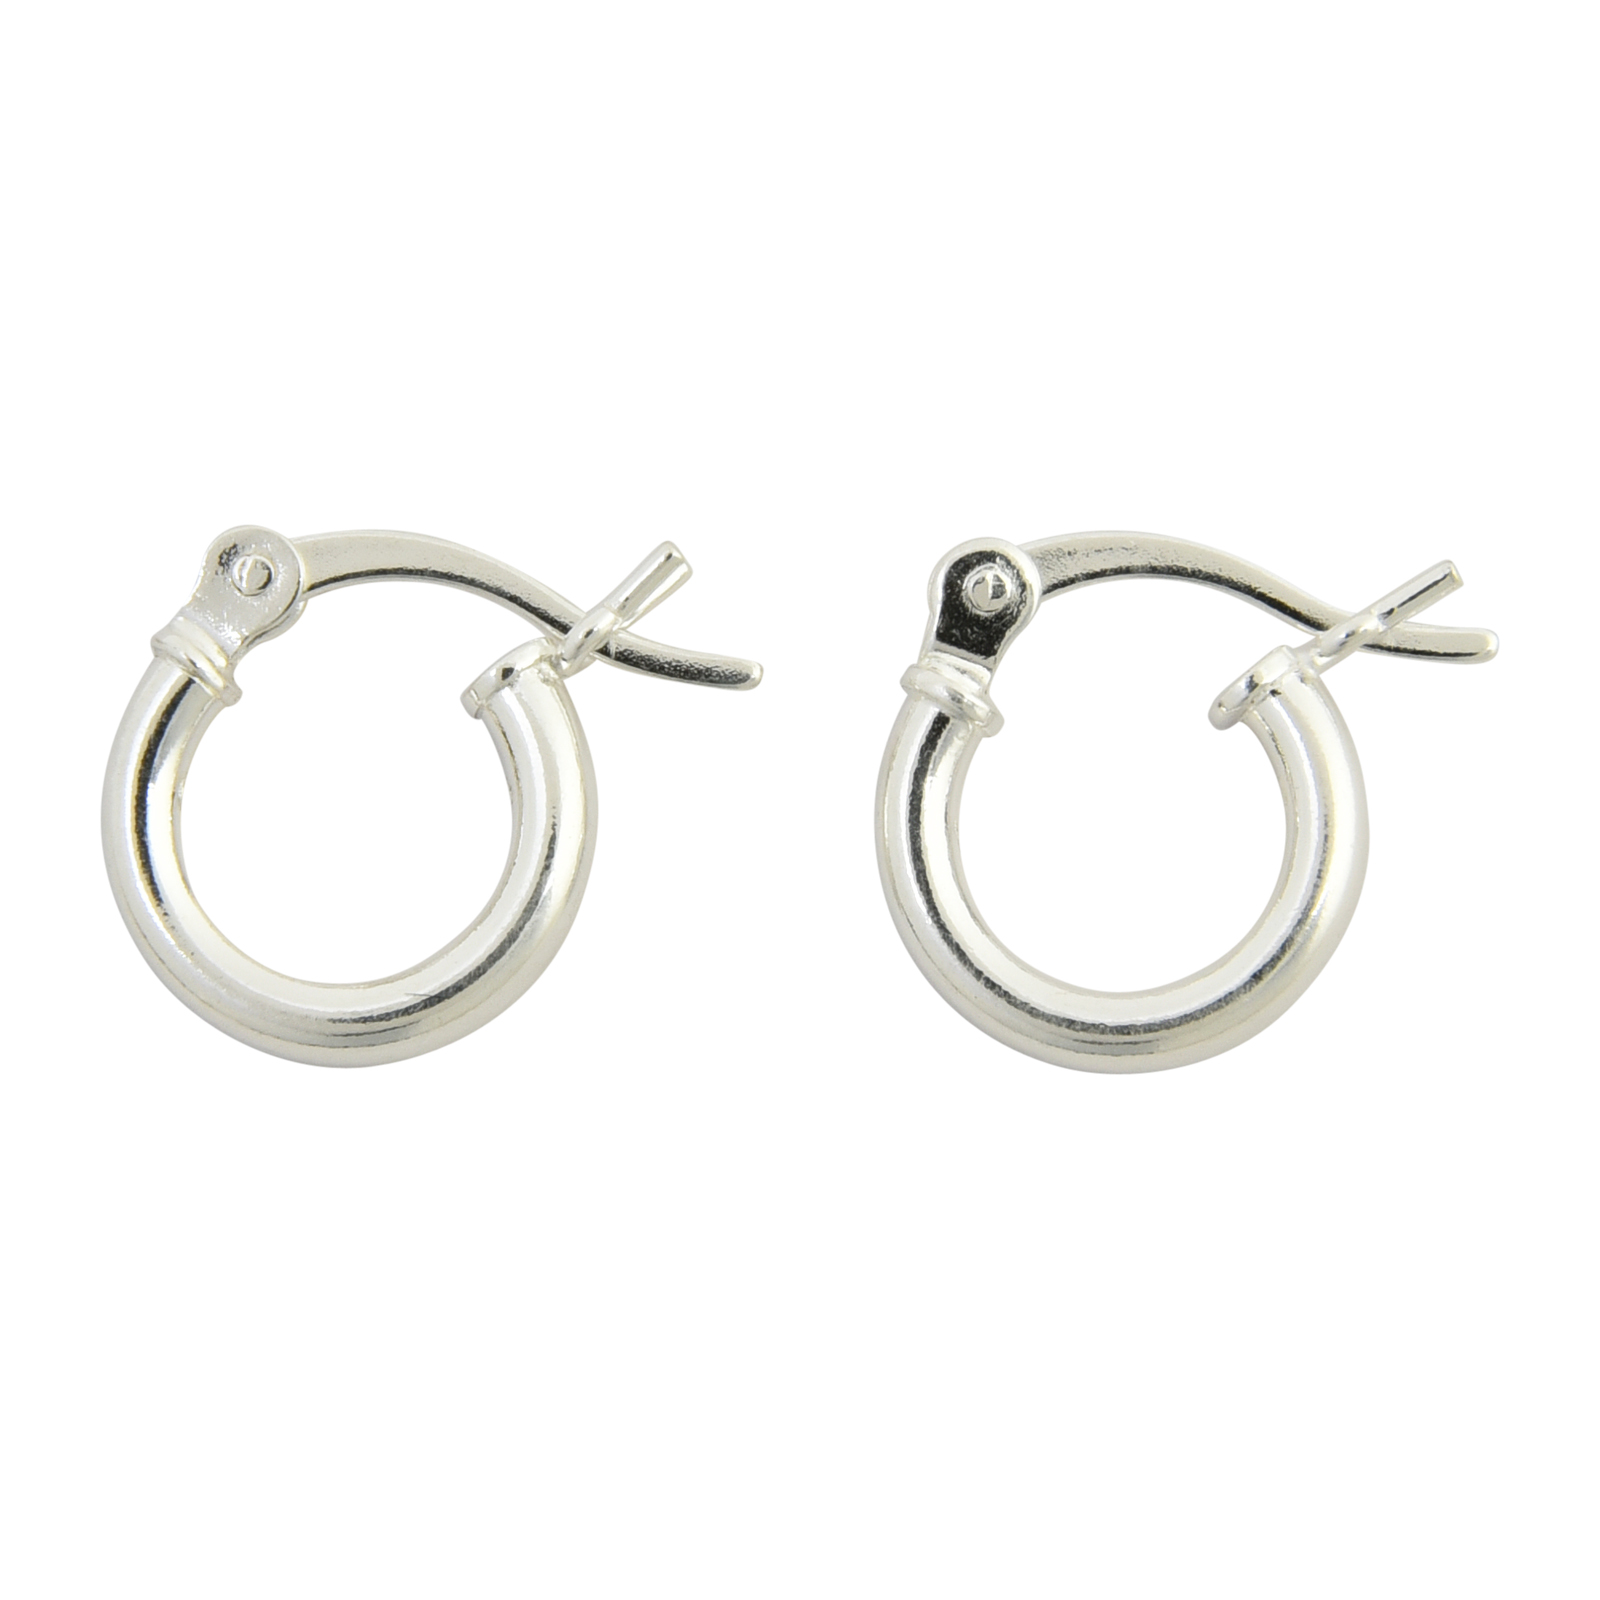 925 Sterling Silver Textured /& Polished Round Hoop Earrings 2mm x 35mm